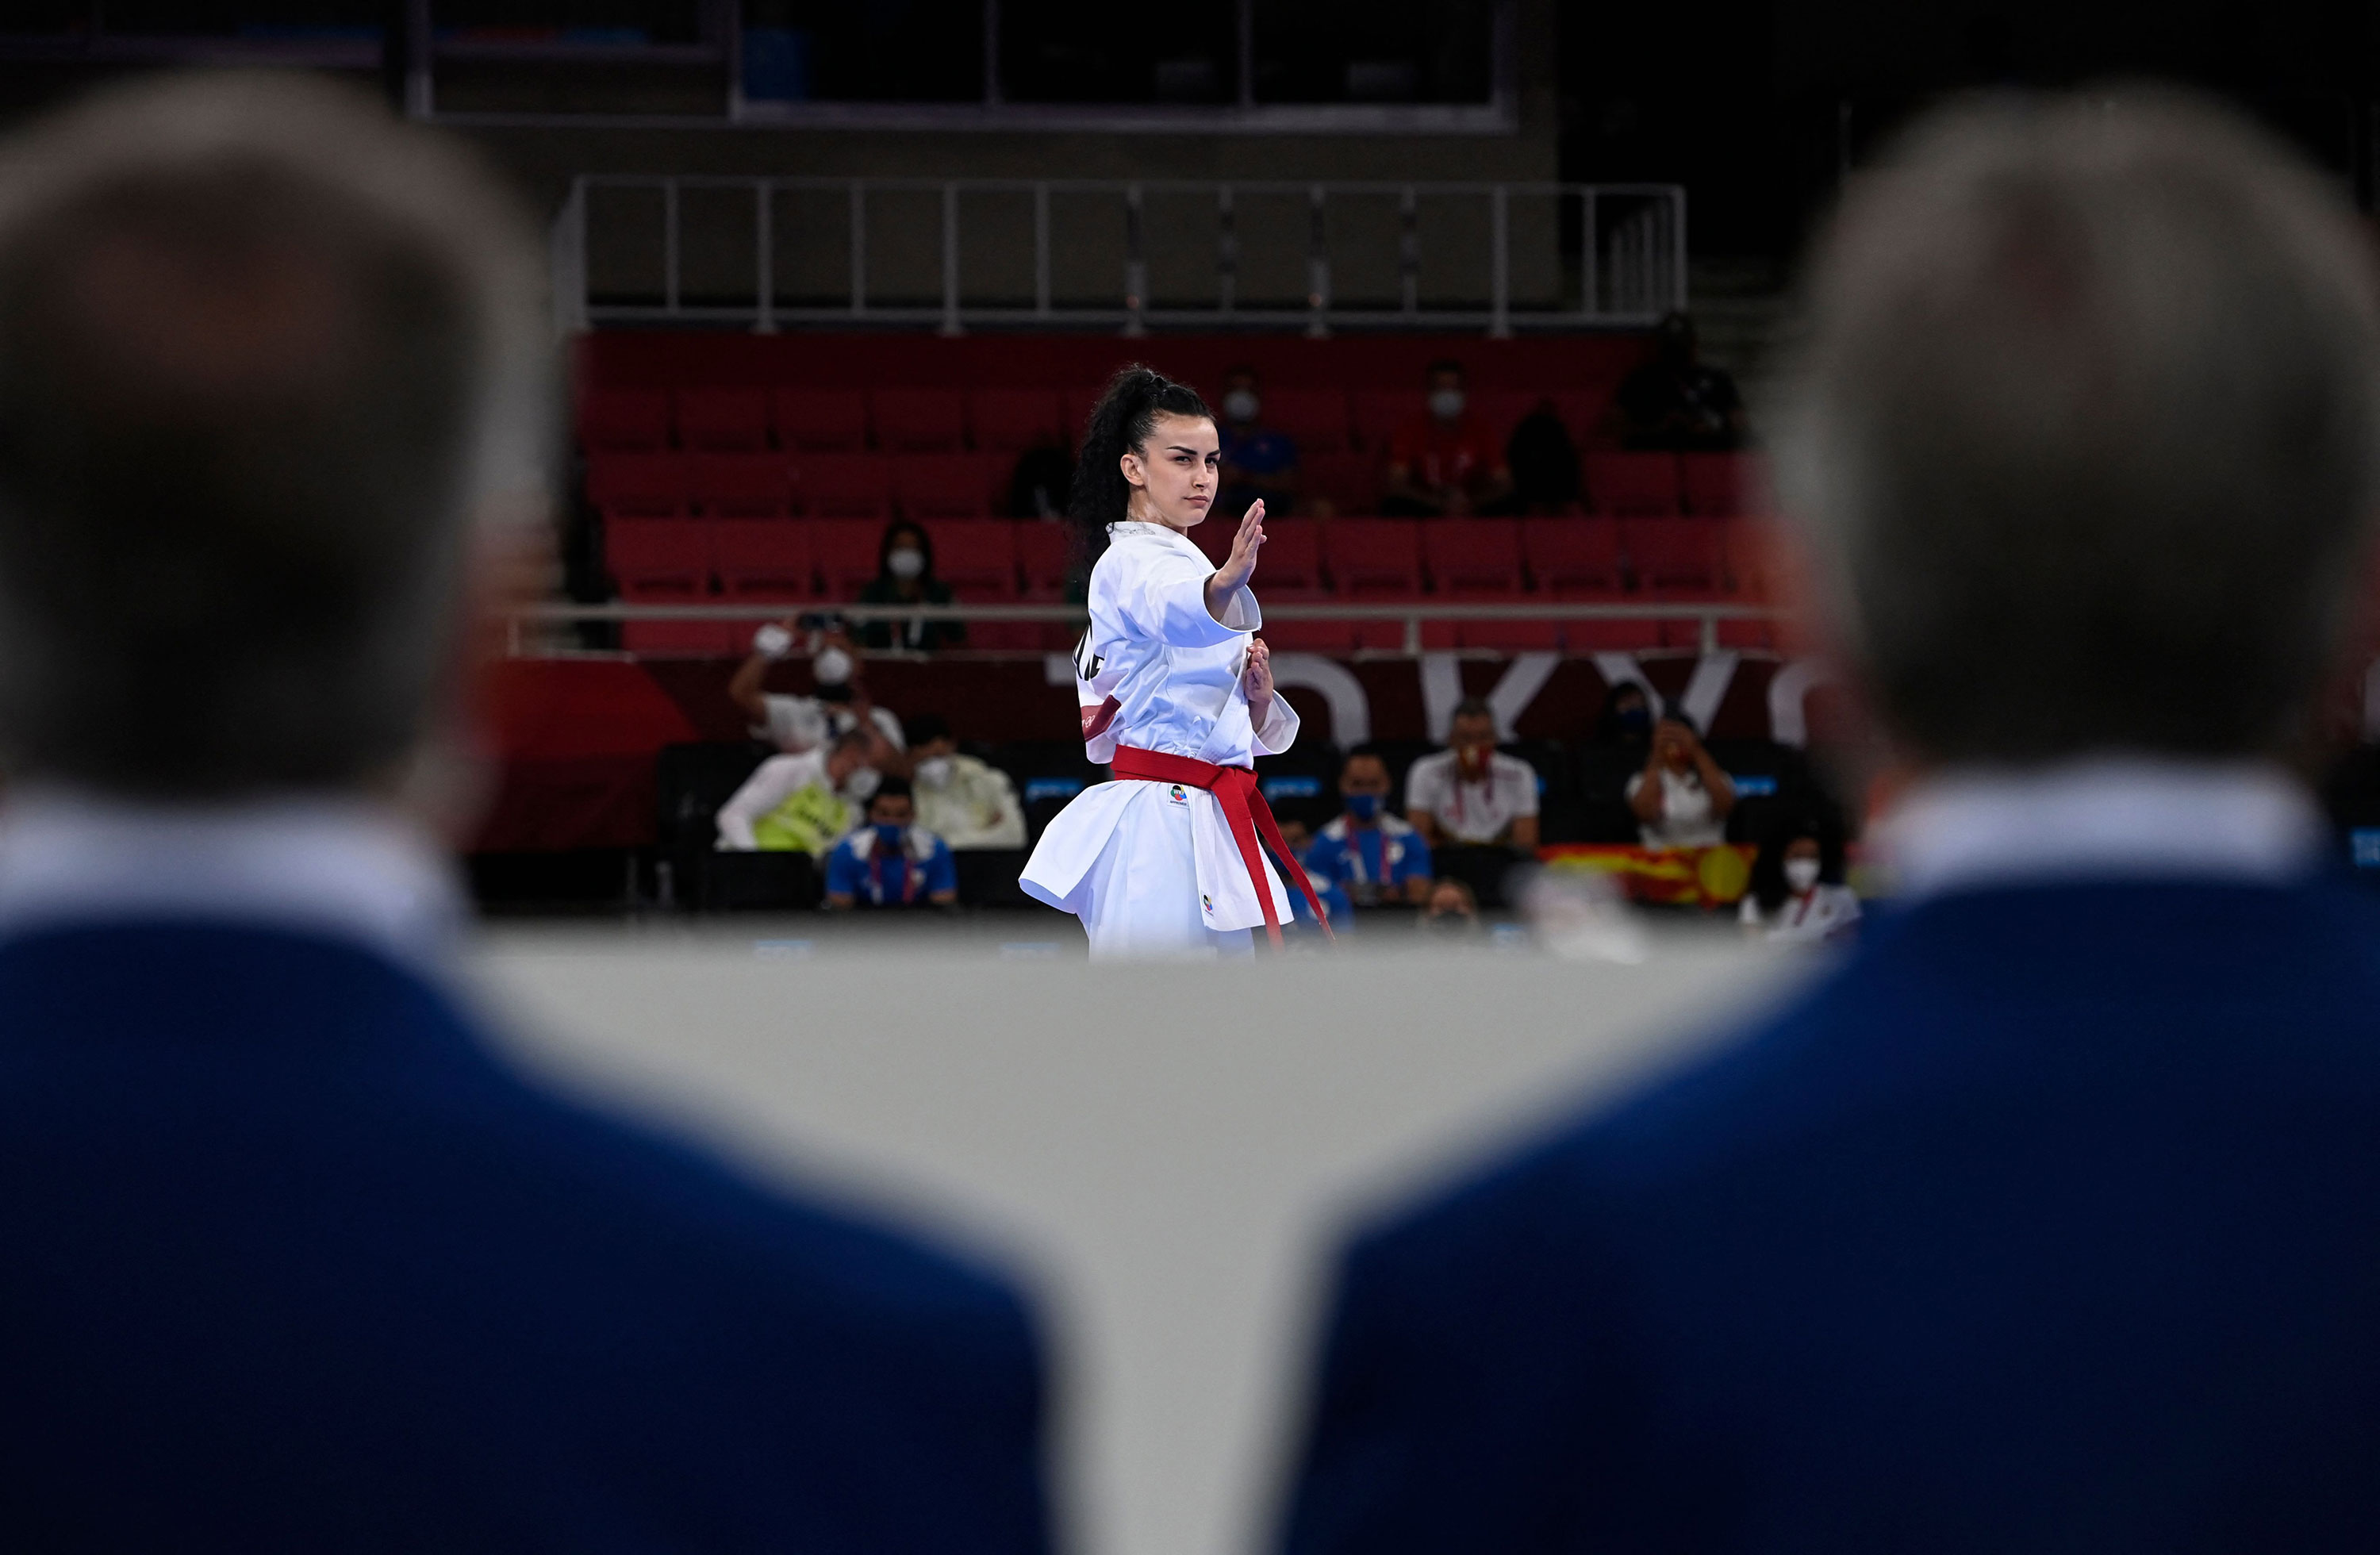 Judges watch North Macedonia's Puliksenija Jovanoska competes in the kata event of karate competition on August 5.